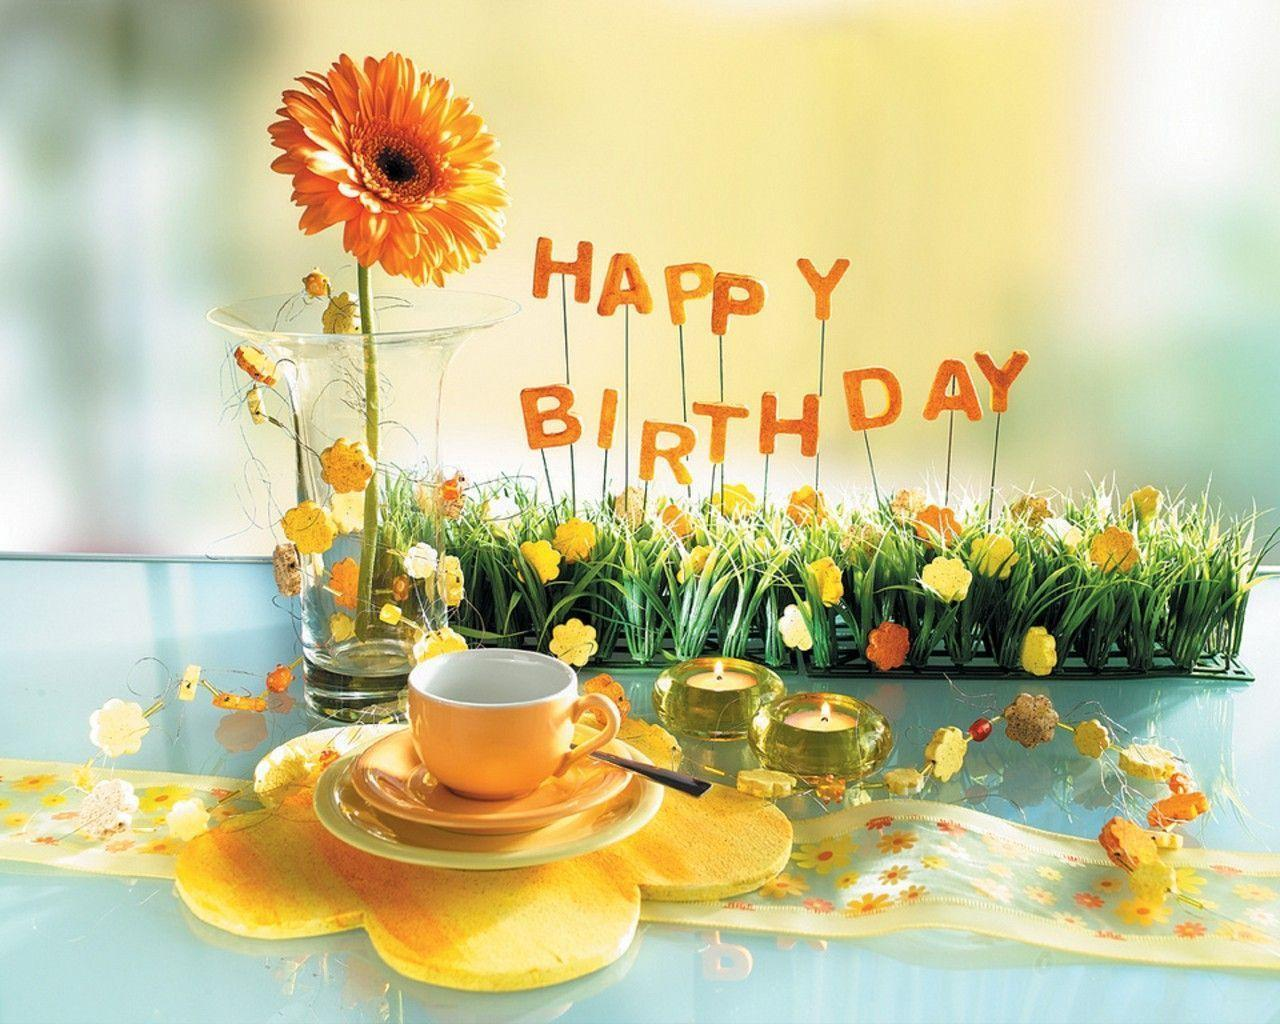 Happy Birthday Wallpapers Images Cards, Wallpapers for Birthday ...